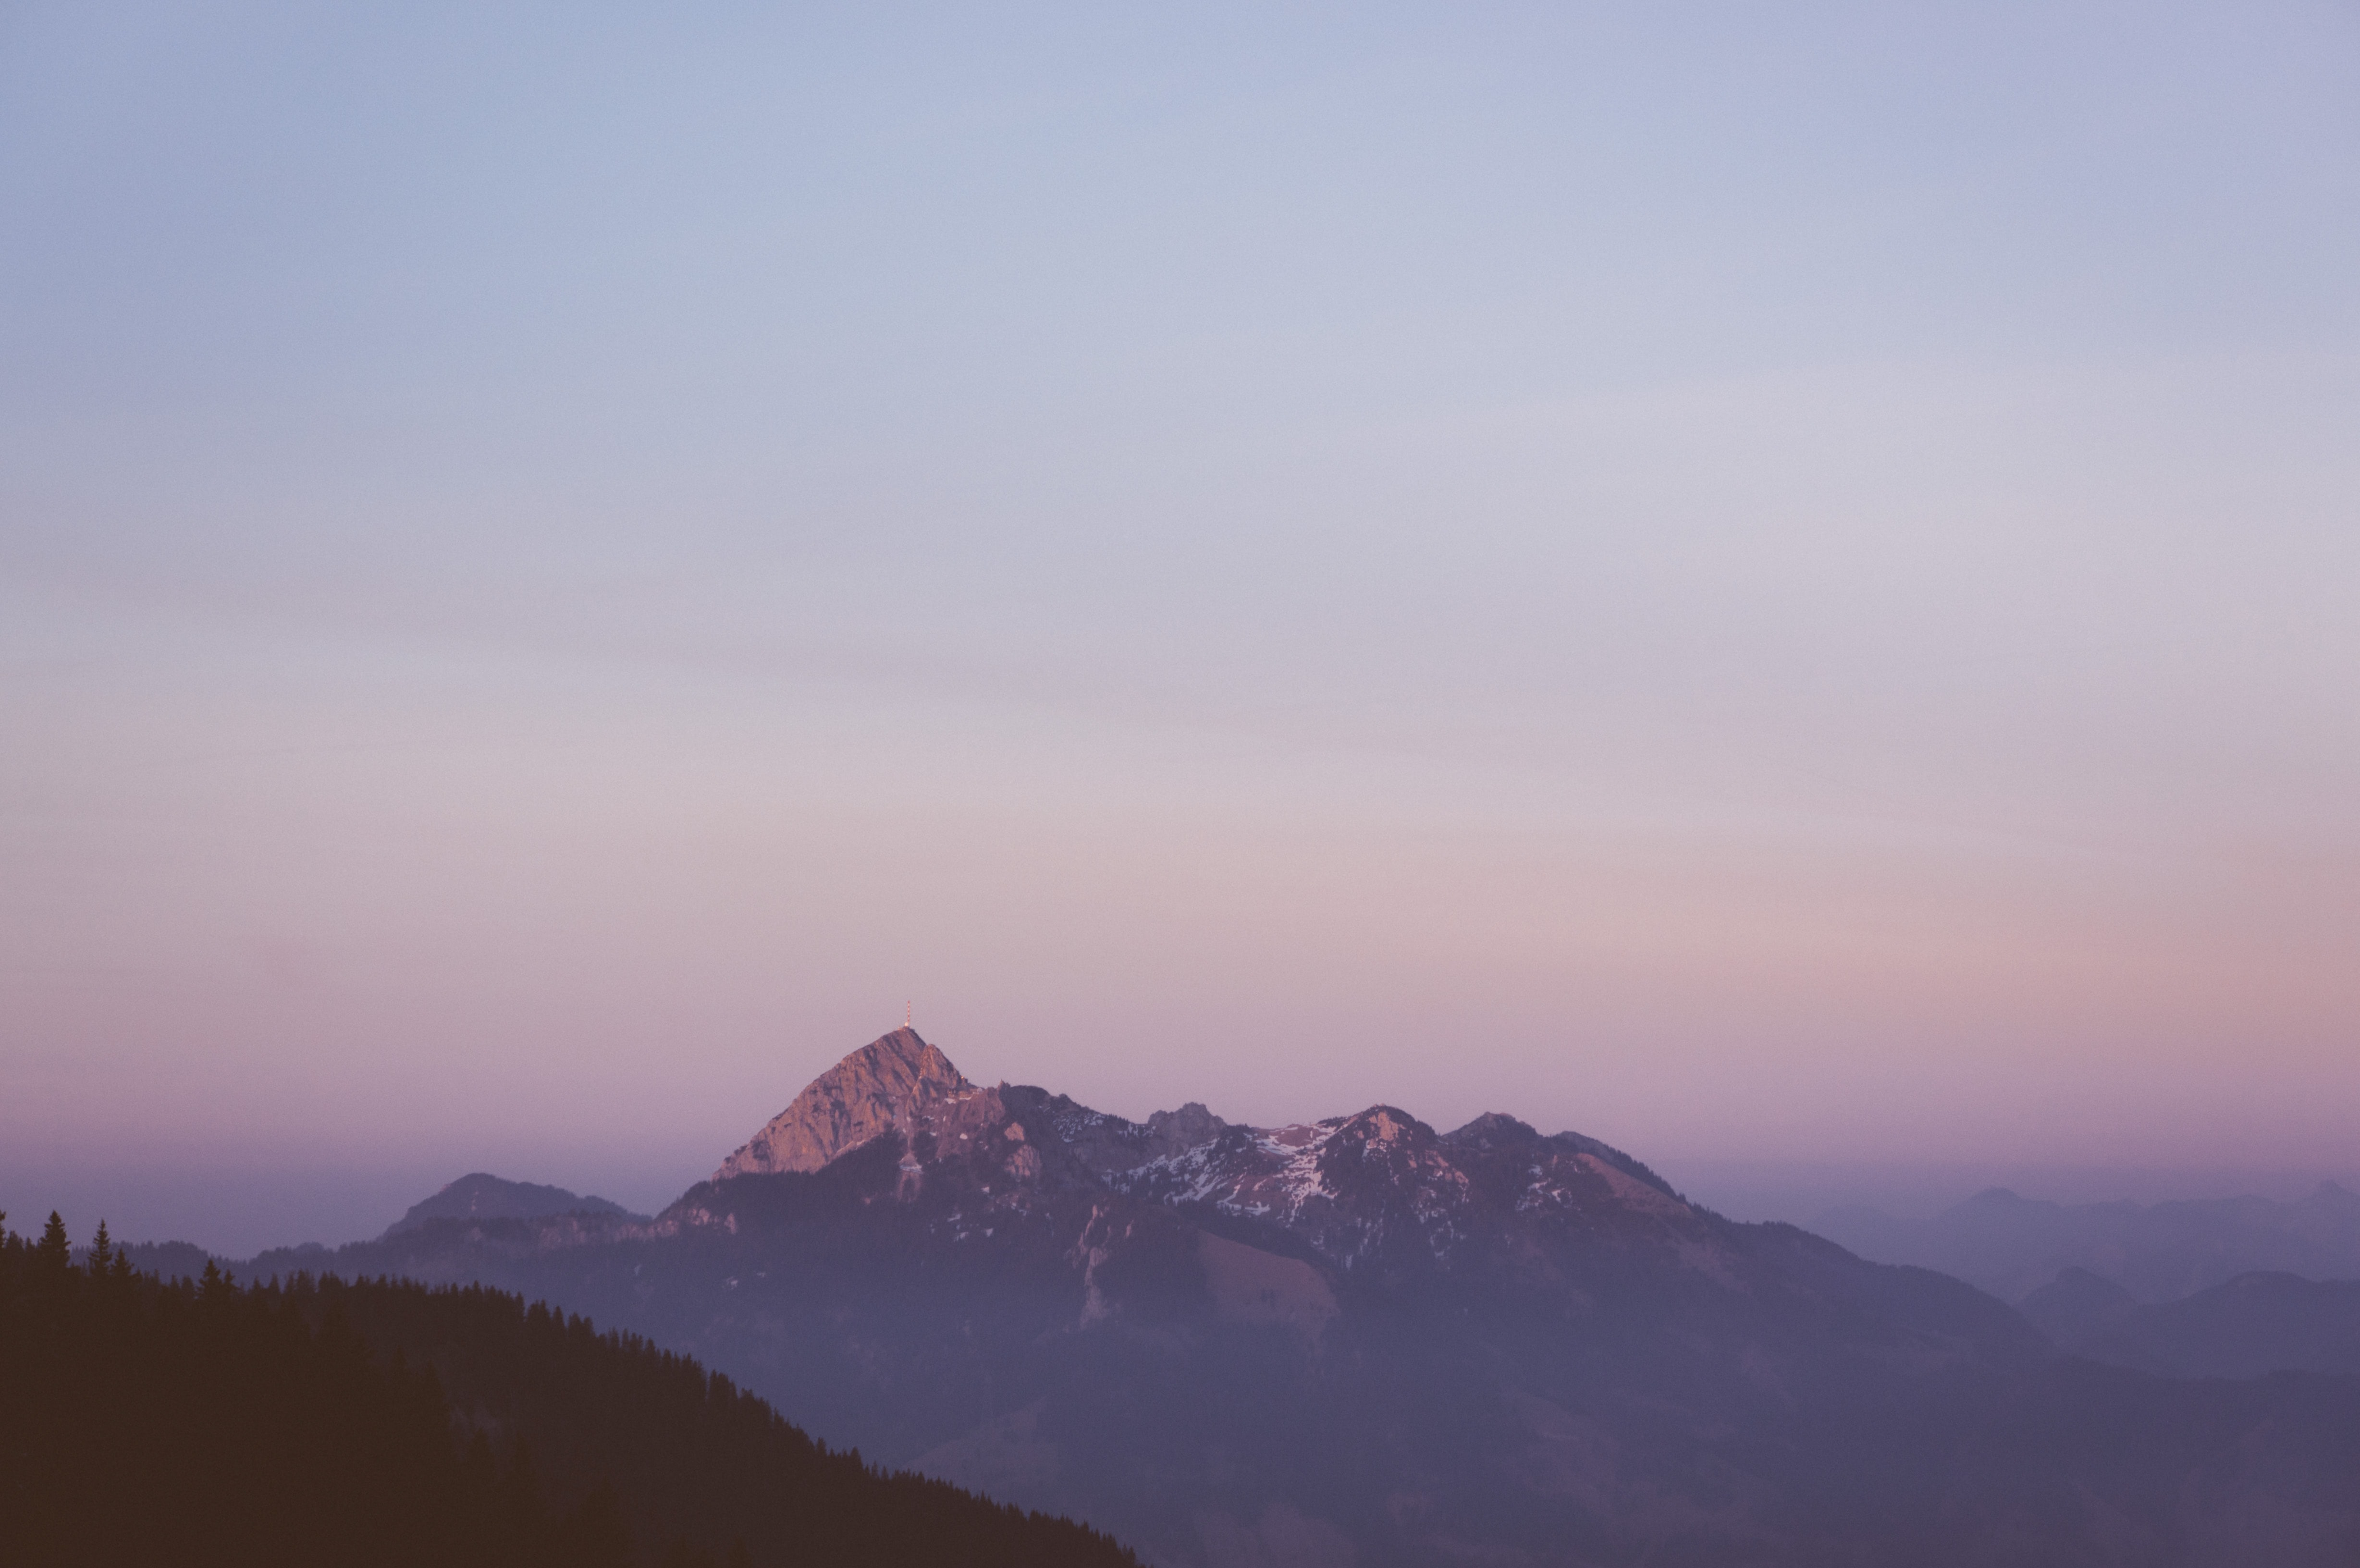 A mountain massif with a radio mast on one of its peaks during sunset